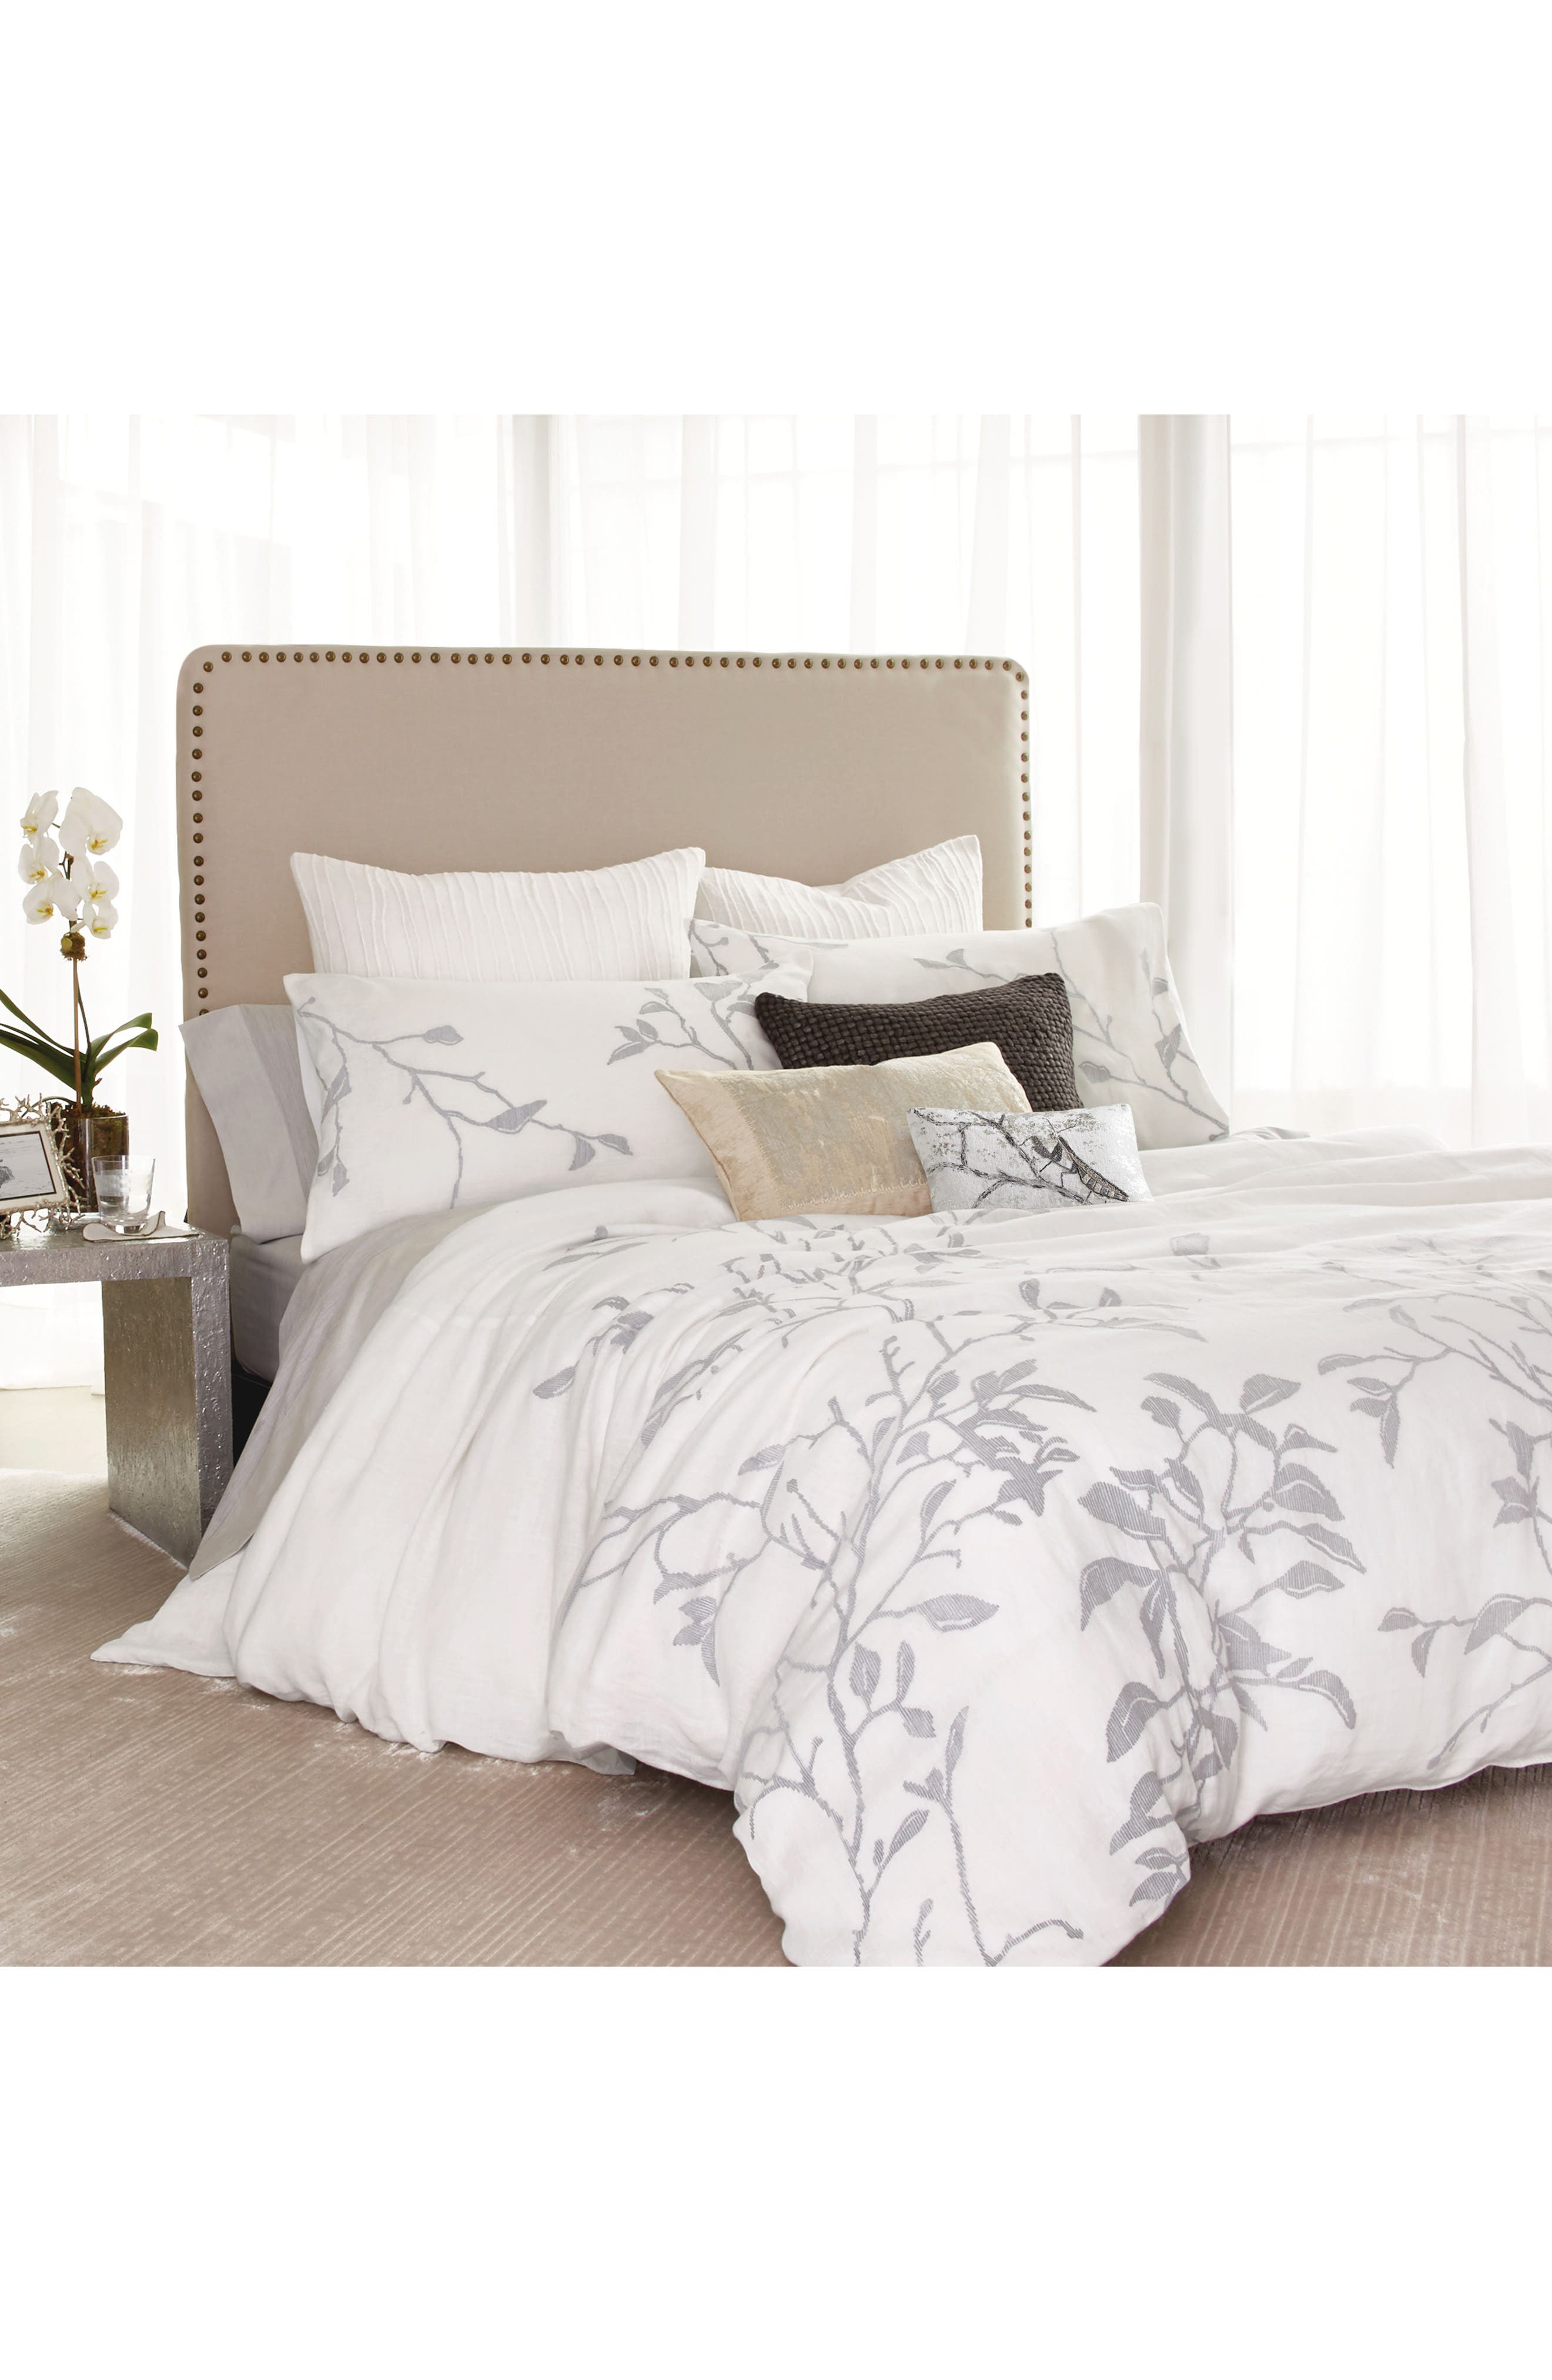 Branch Duvet Cover,                         Main,                         color,